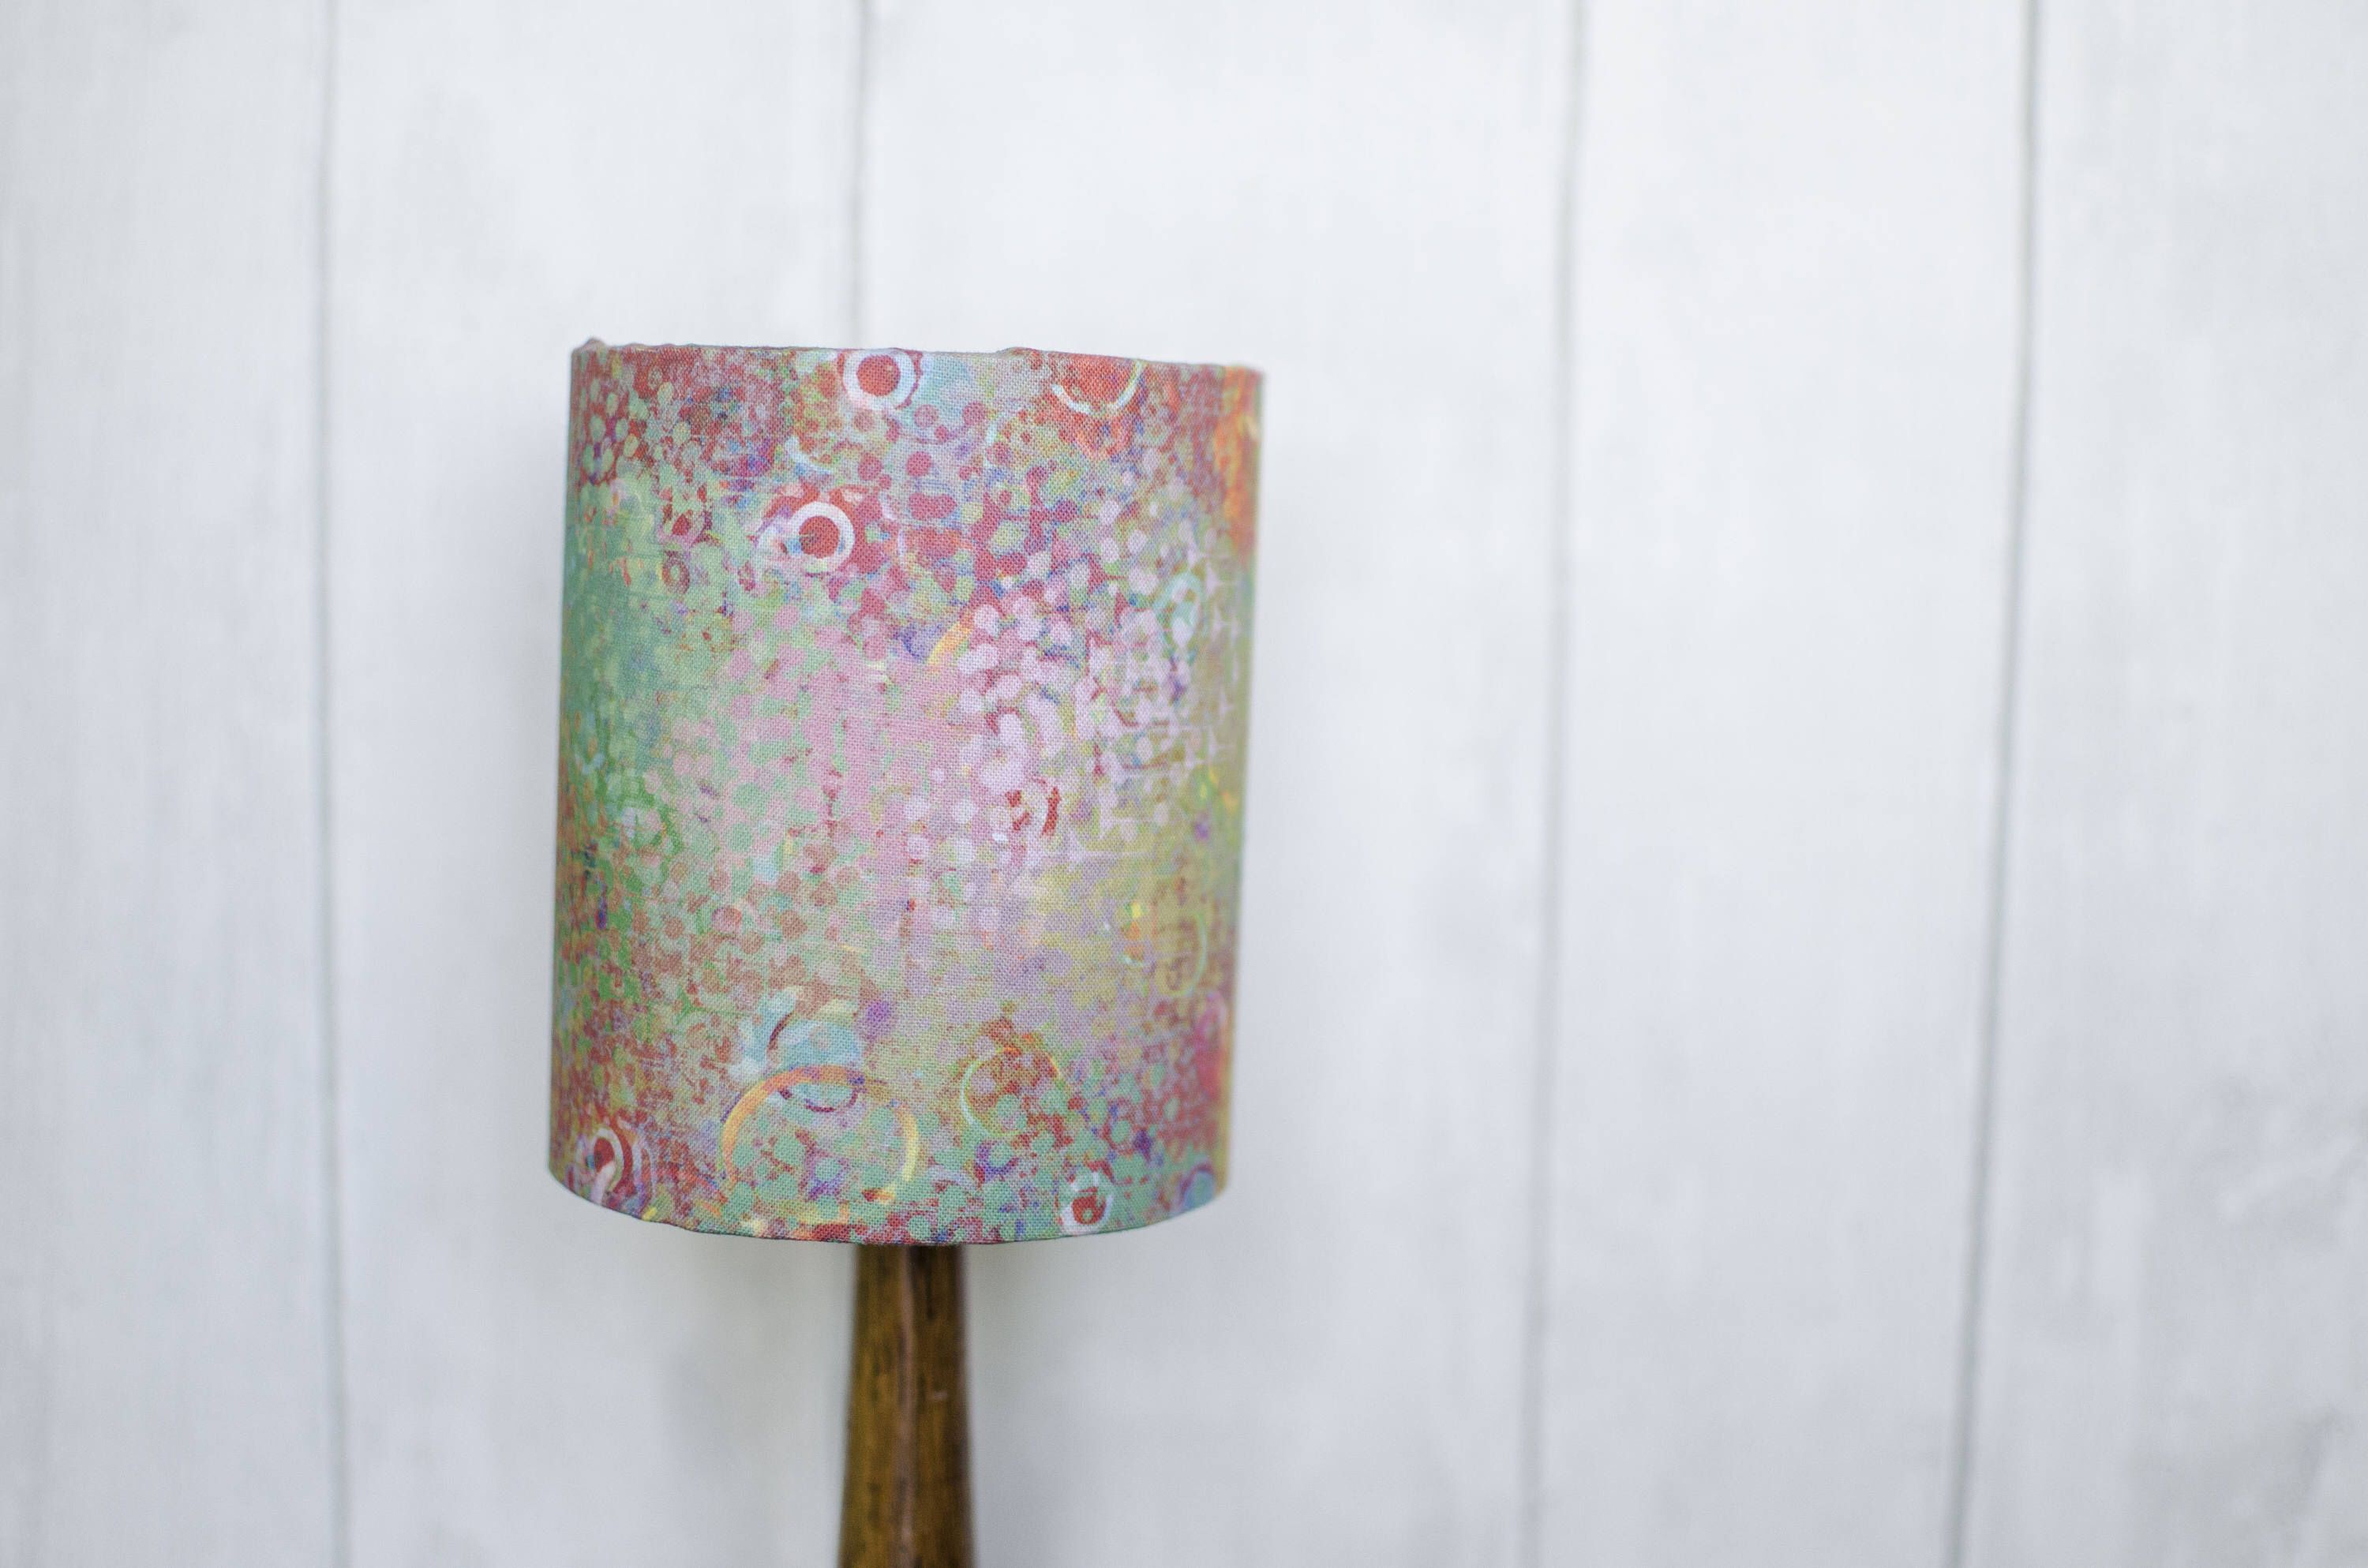 Statement Lampshade Bright Green Lamp Shade Rainbow Home Decor Table Ceiling Light